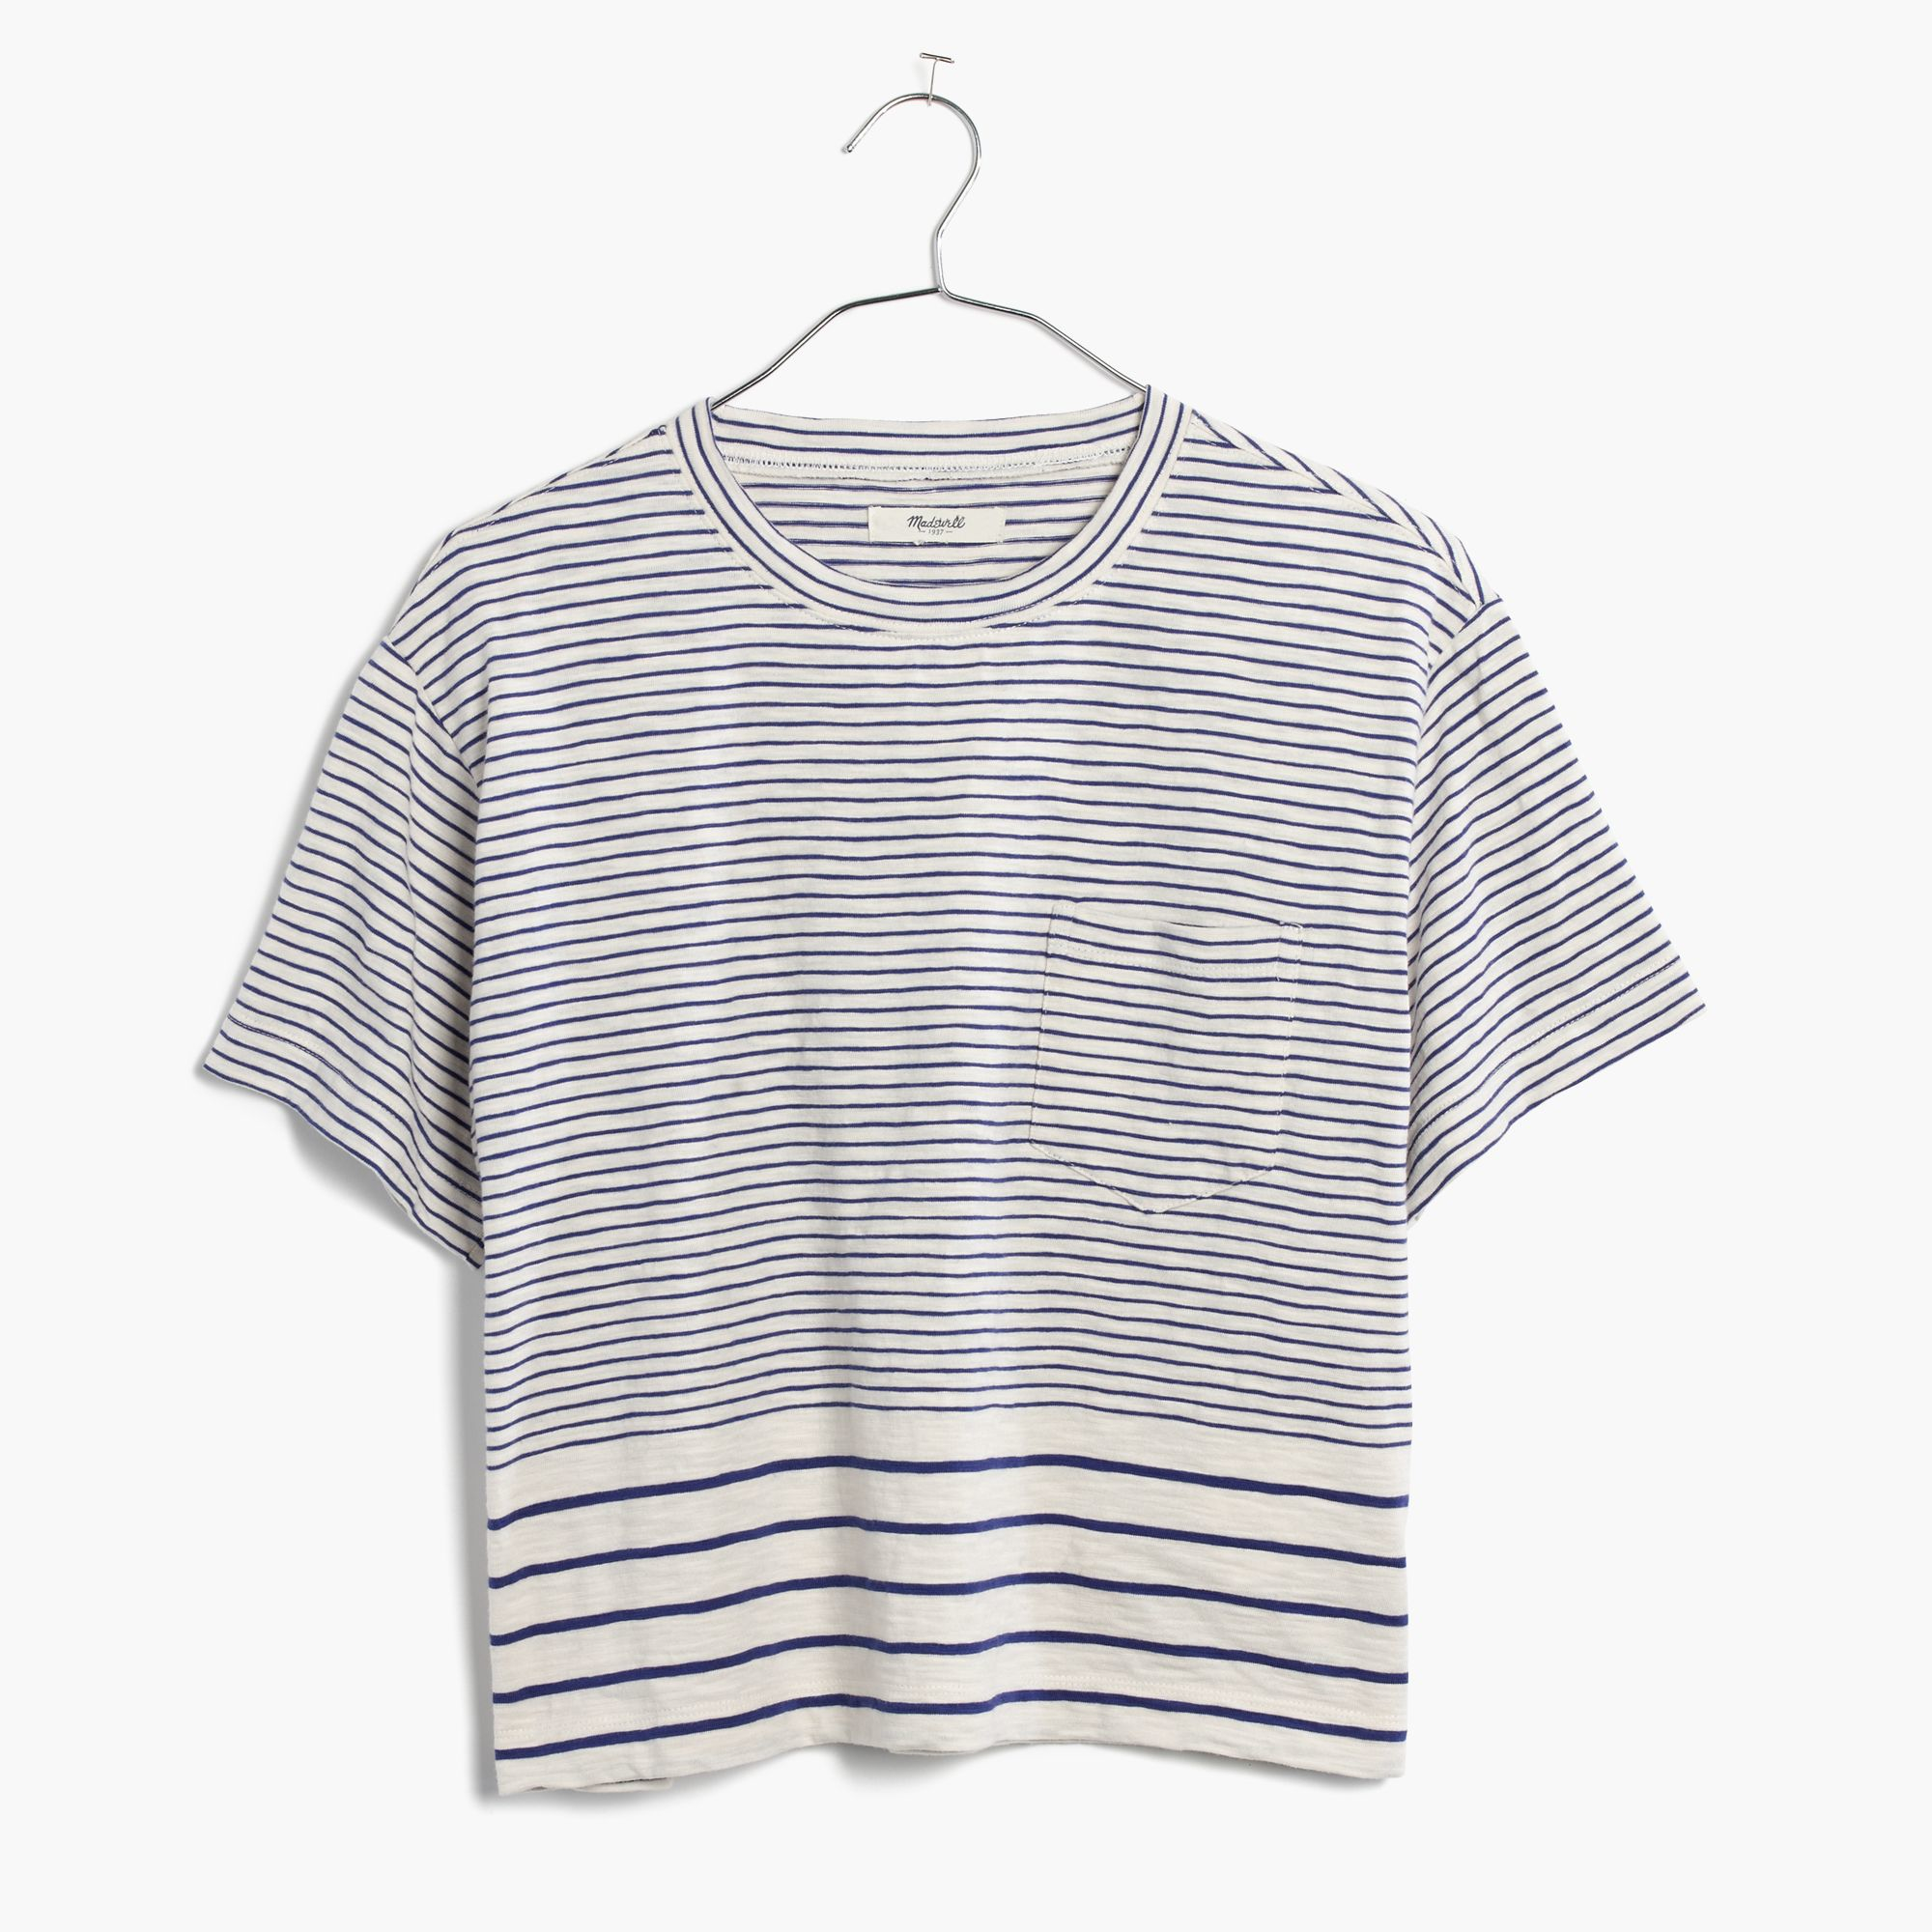 486b4a4b Madewell Striped Pocket Tee in Gray - Lyst